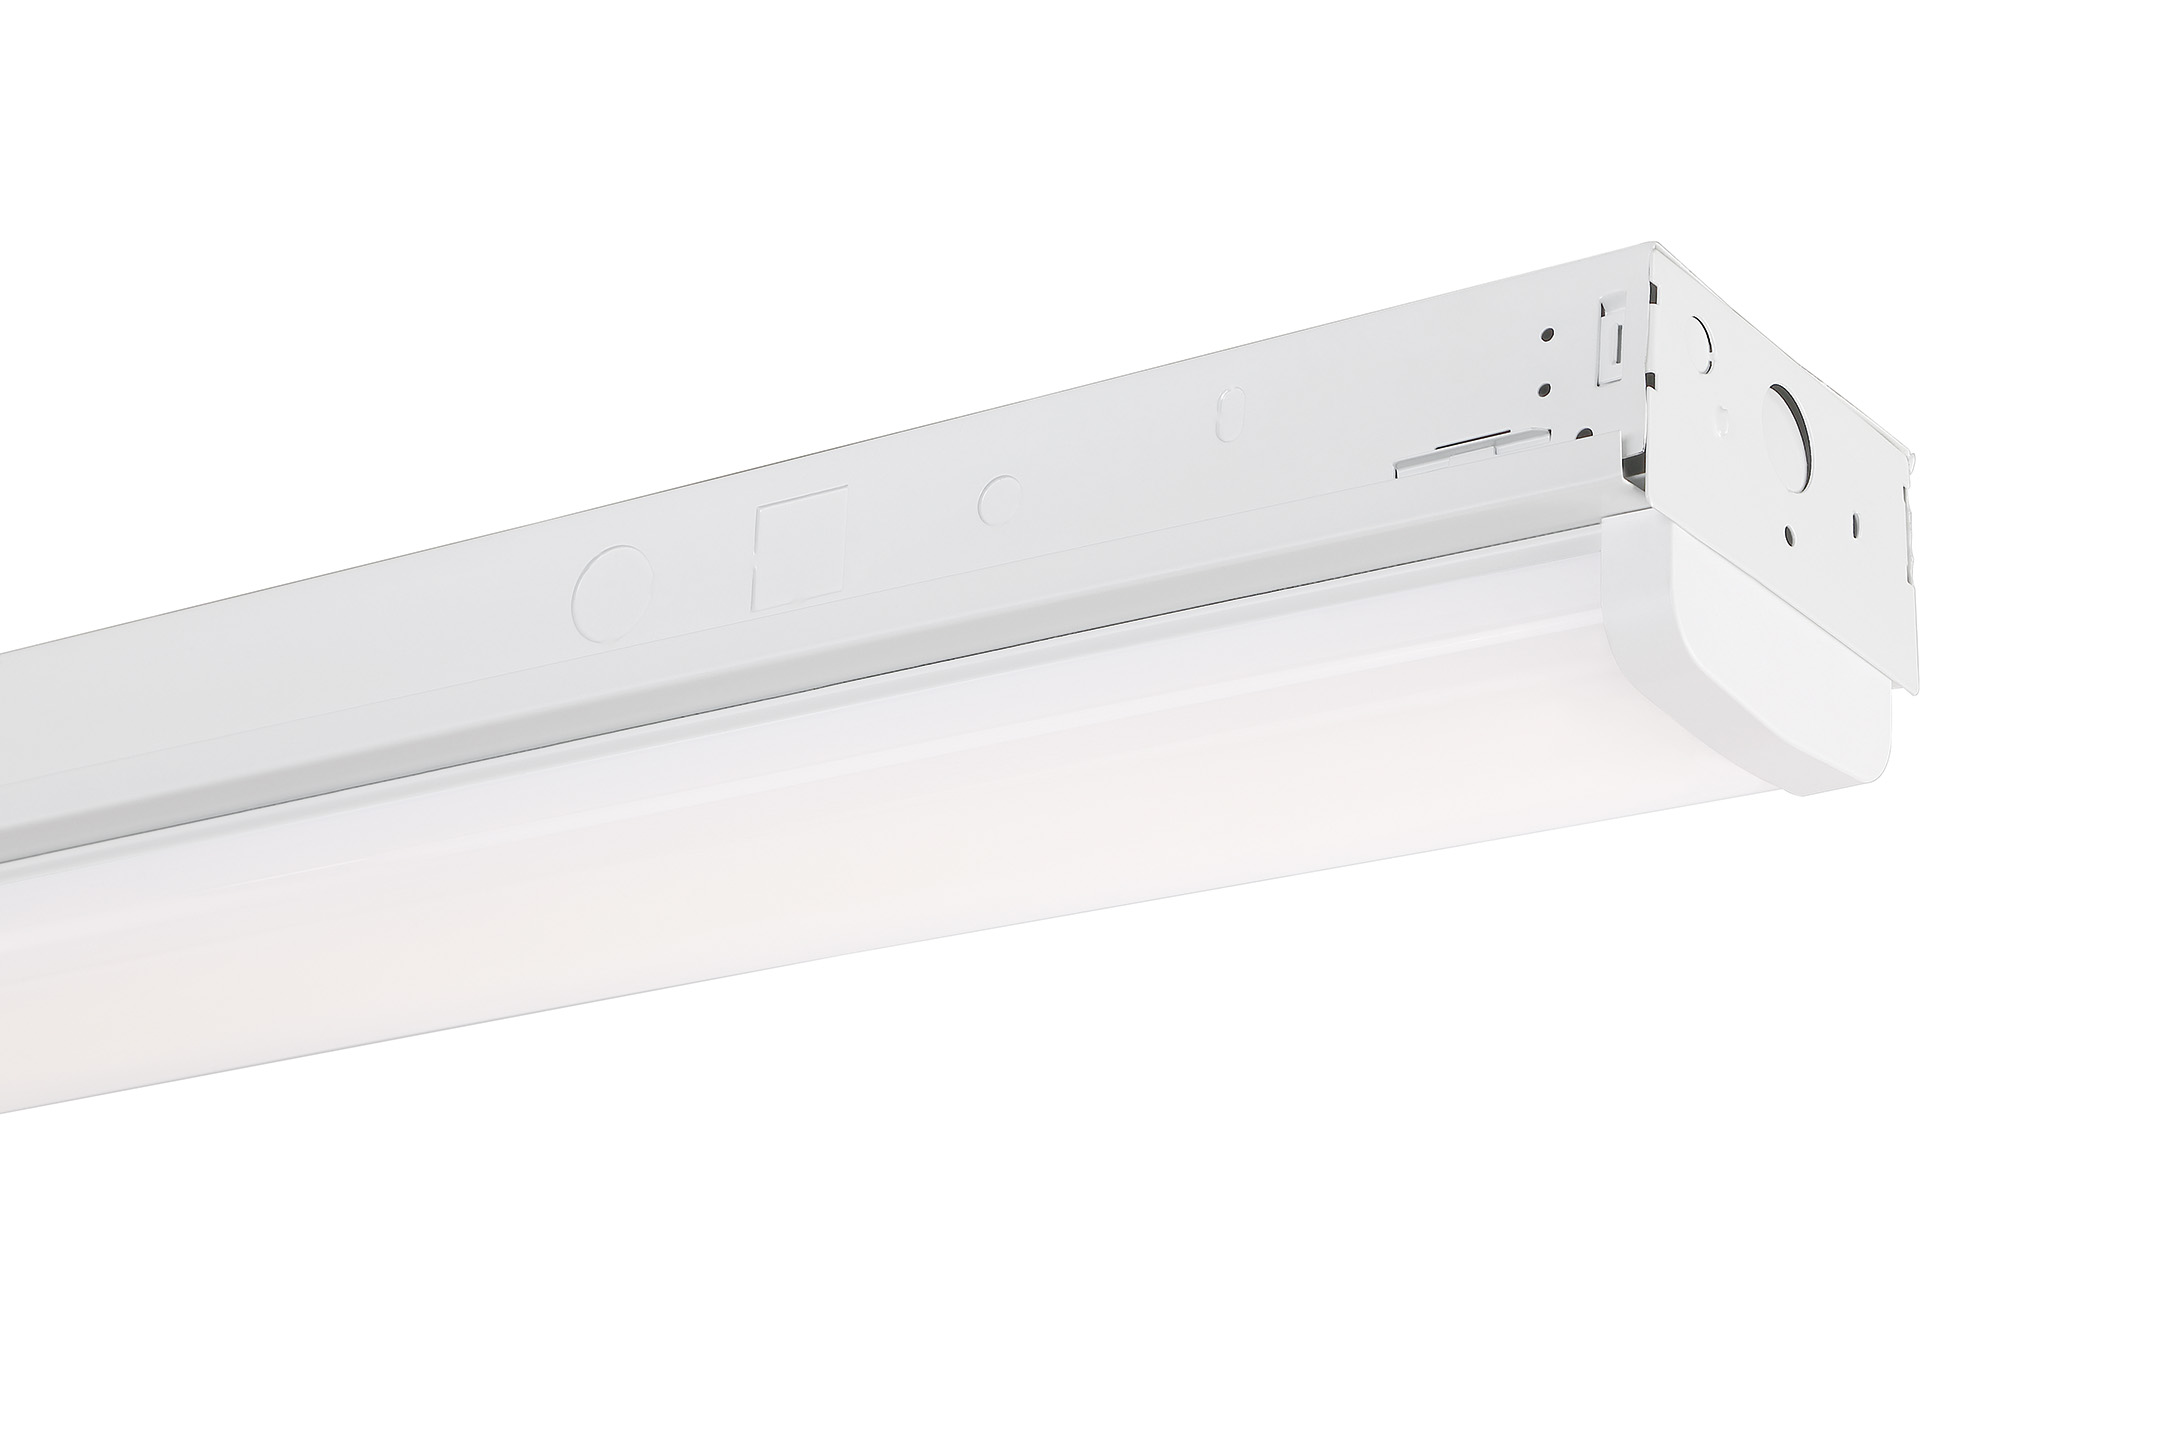 4' LED White Wide Strip - 6700LM, 4000K, MV, 0-10V Dimming, DLCP